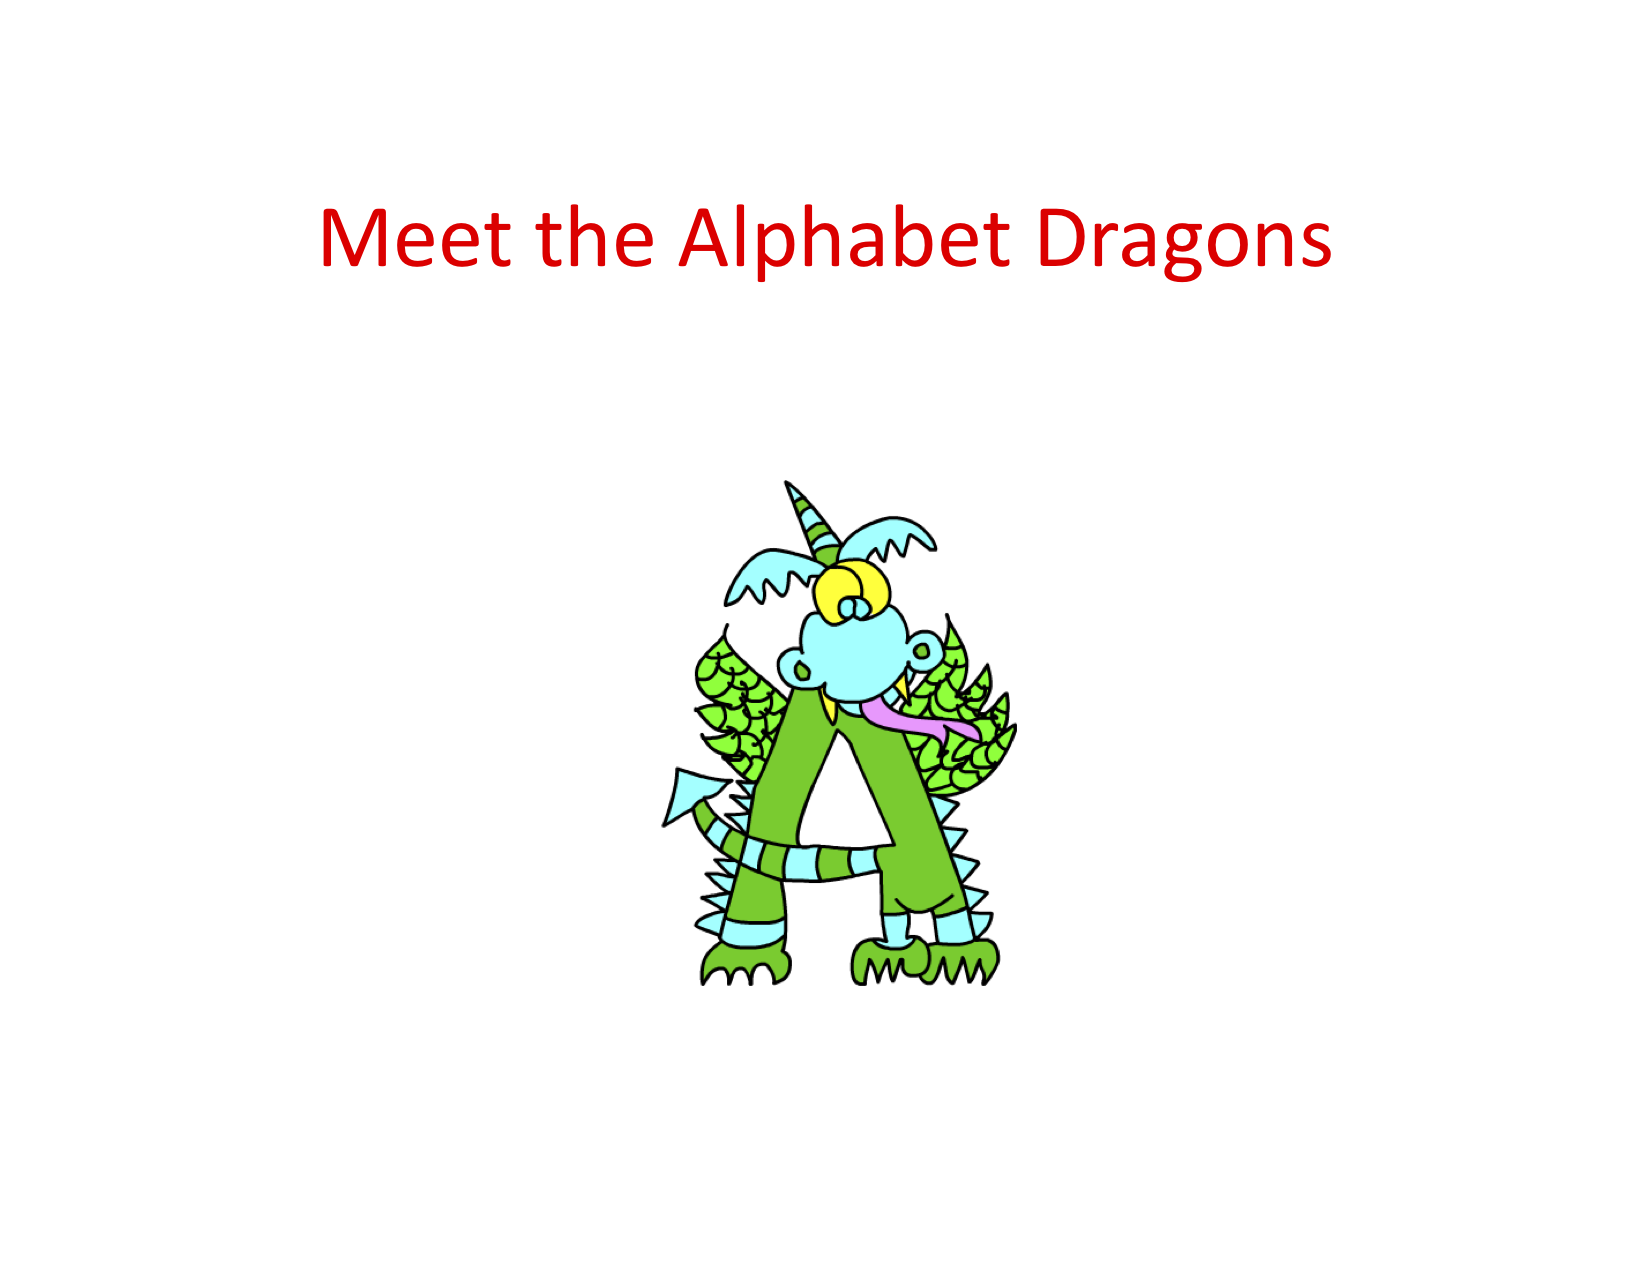 MeetTheAlphabetDragonsUSE (dragged)